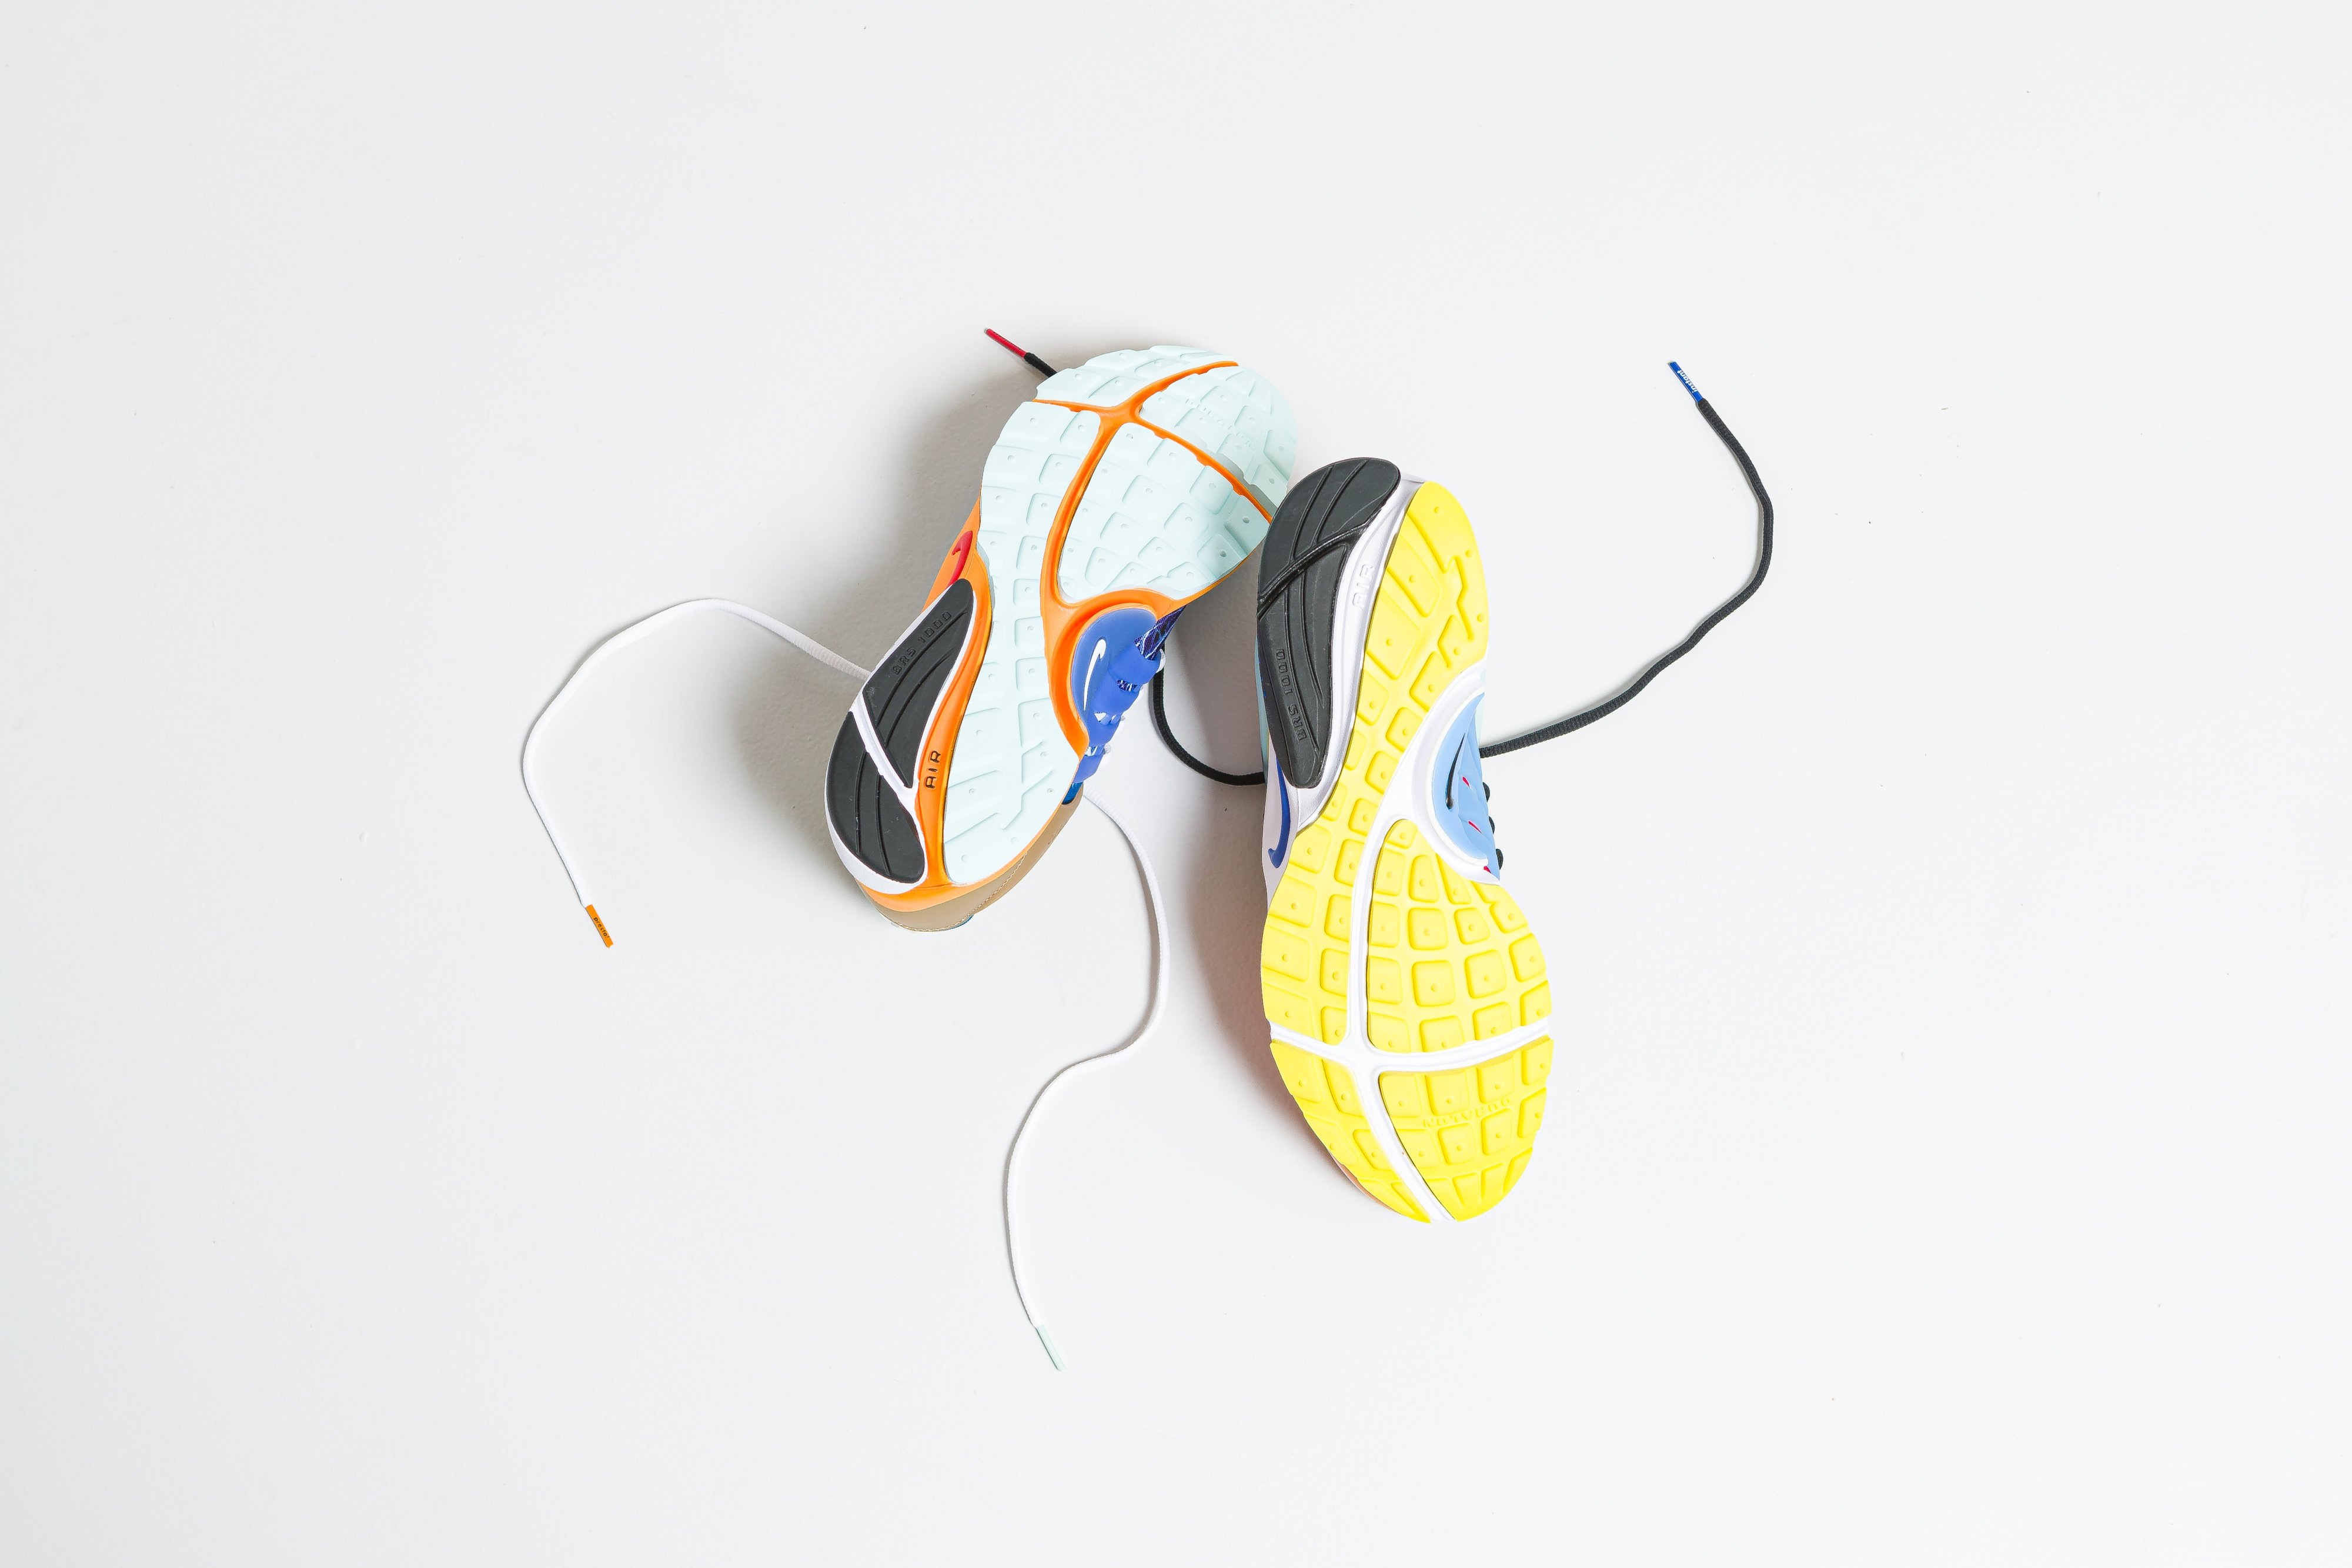 Up There Launches - Nike Air Presto 'What The' - Multi-Colour/Multi-Colour - DM9554-900